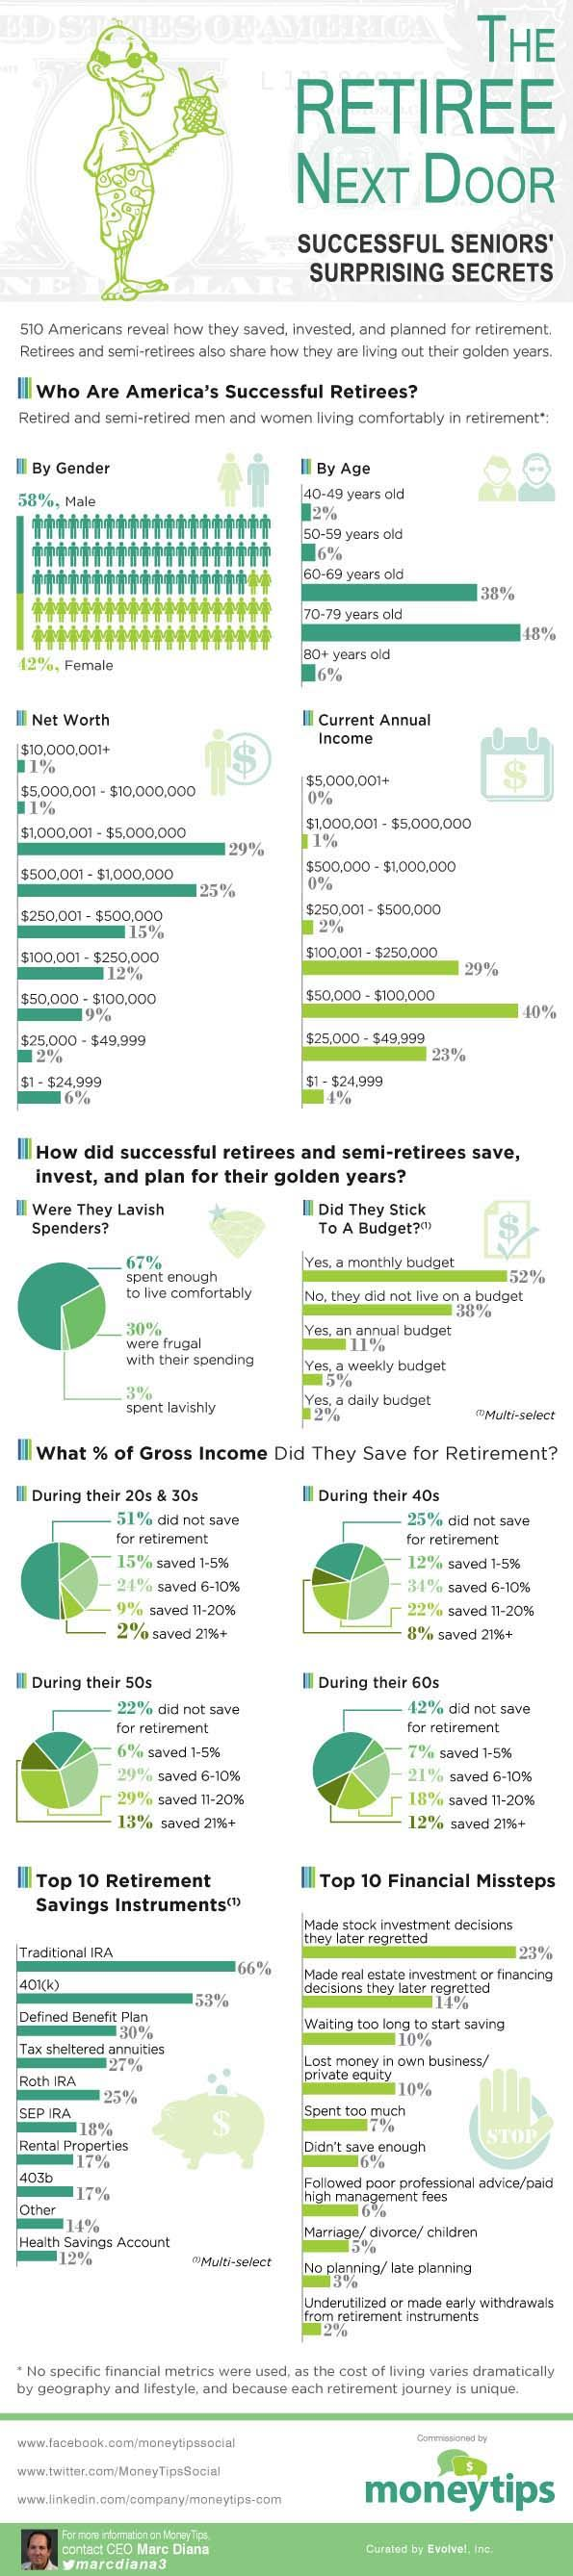 The Retiree Next Door | These are Interesting tidbits on what successful retirees did throughout their lives to retire comfortably. Important lessons: Start early and stick to a budget. Duh!